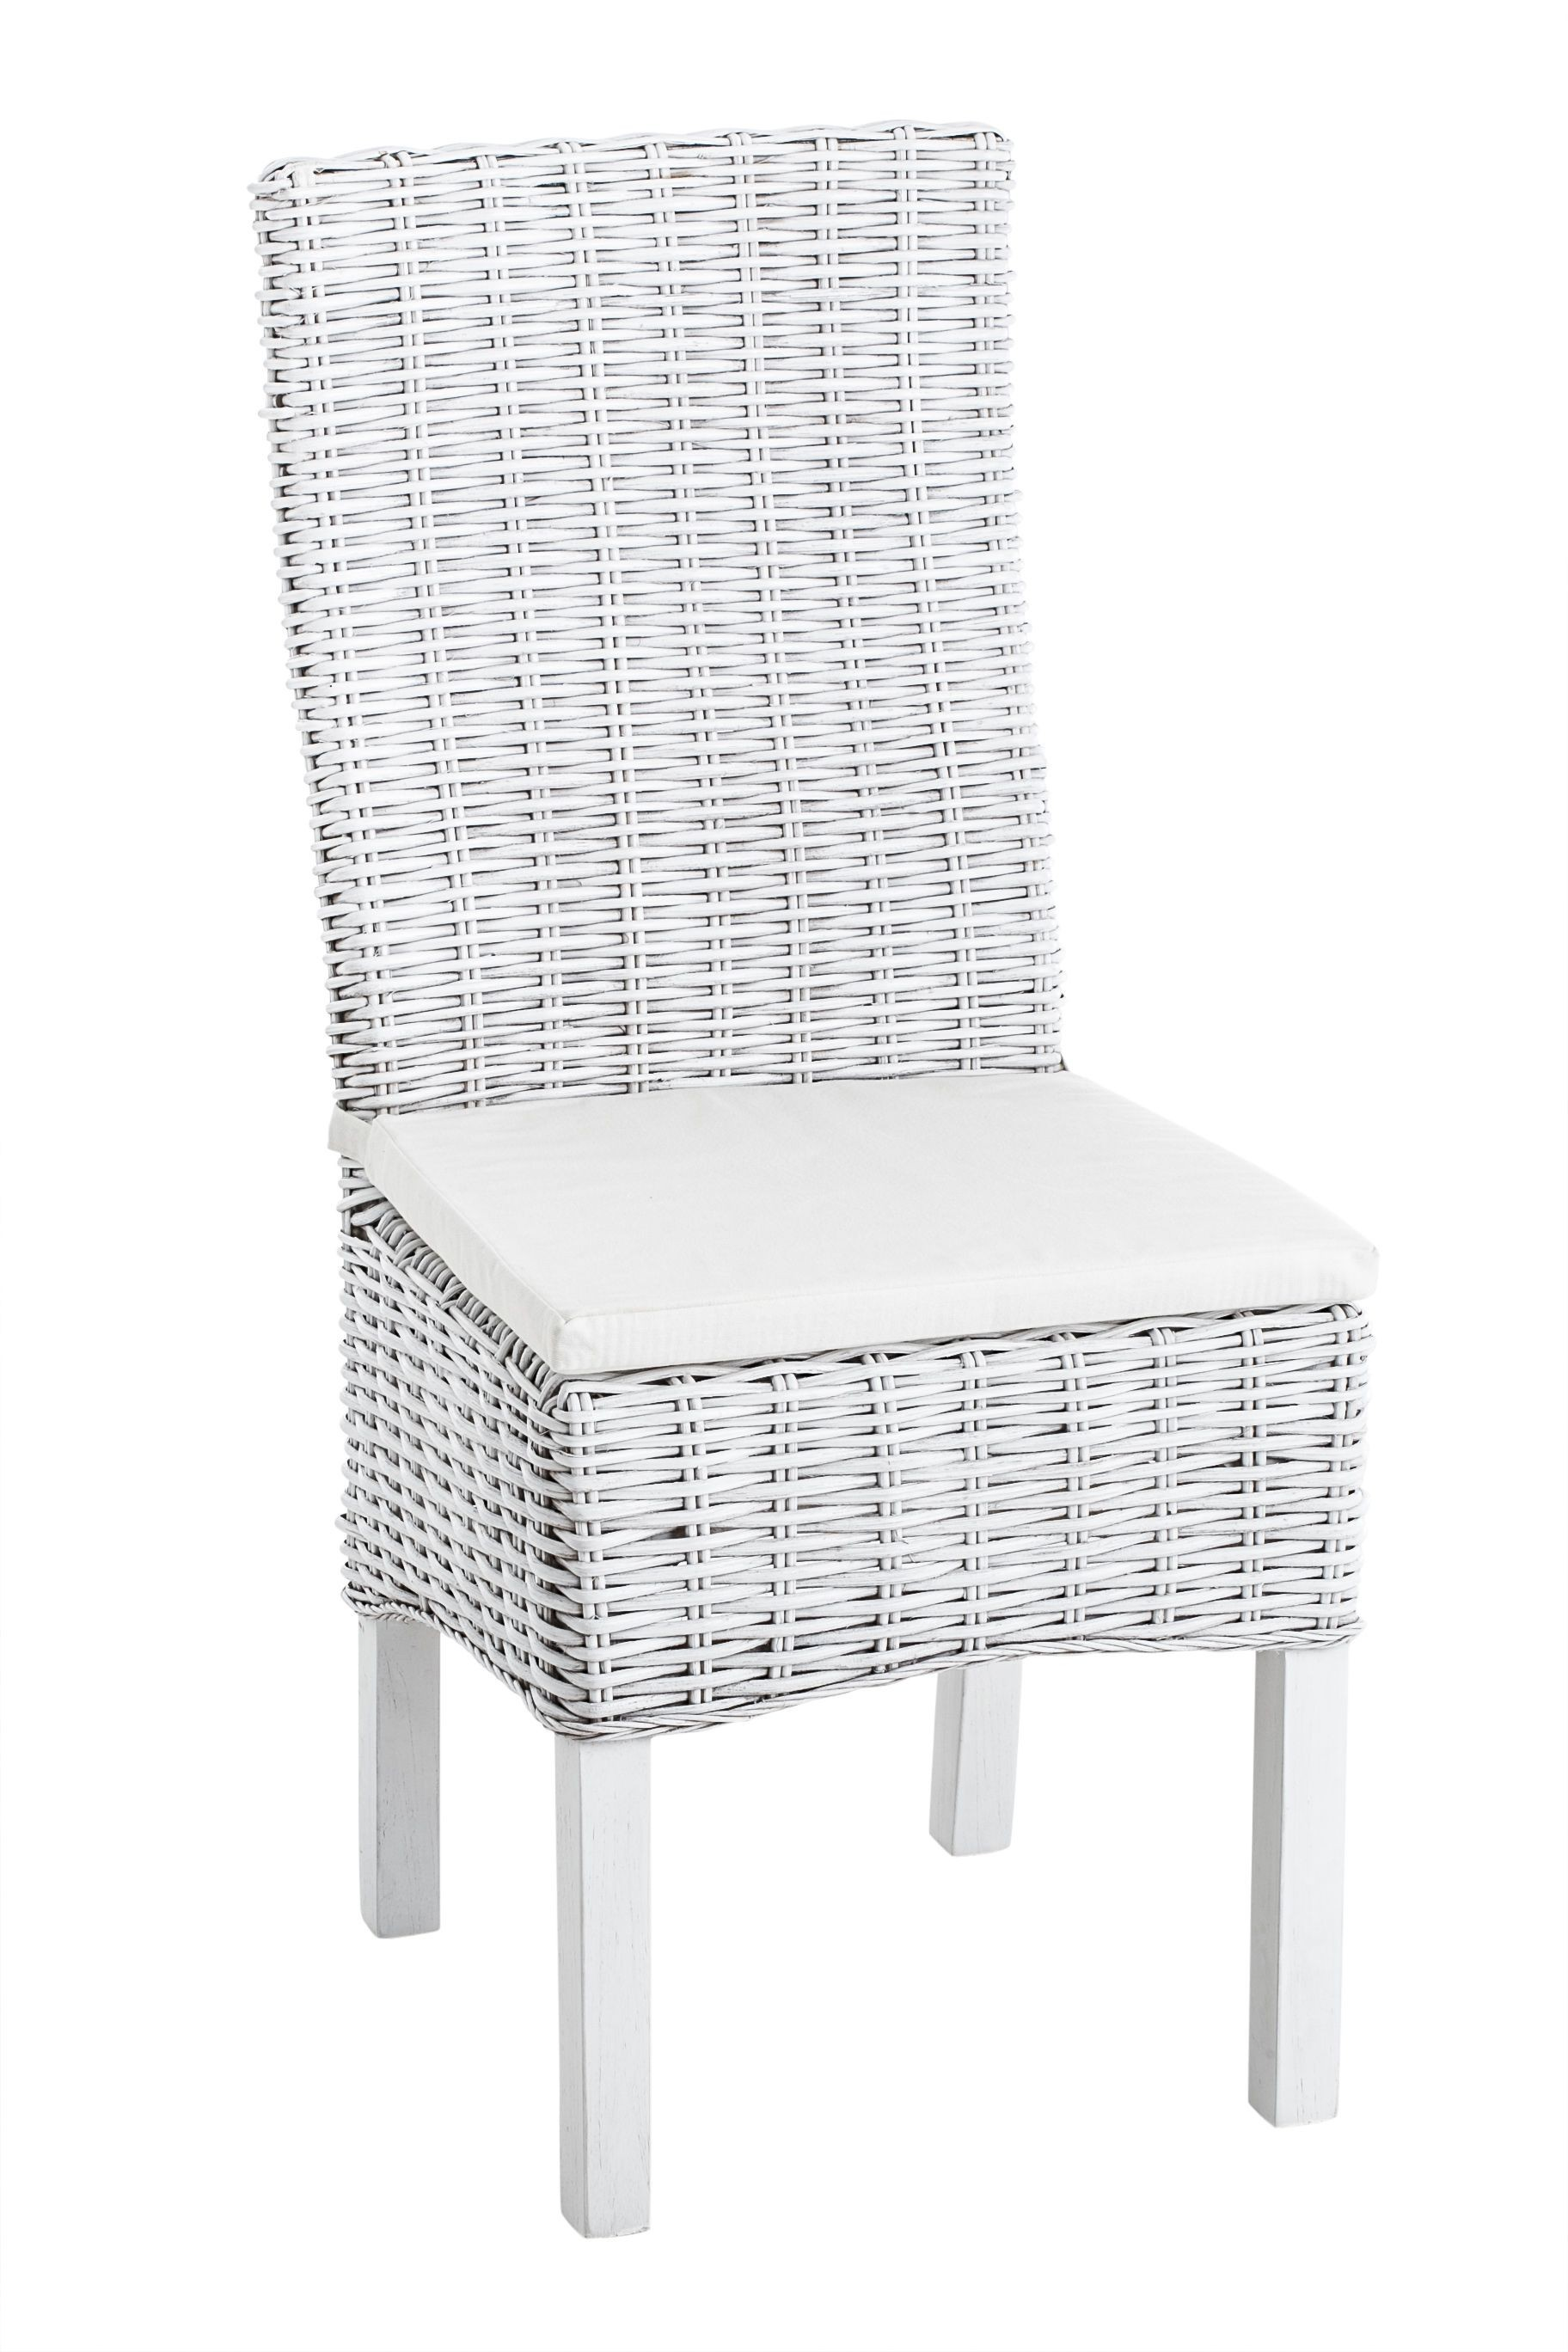 awesome chaise rotin blanc mastic lma pas cher source manger en rotin tresse with chaise